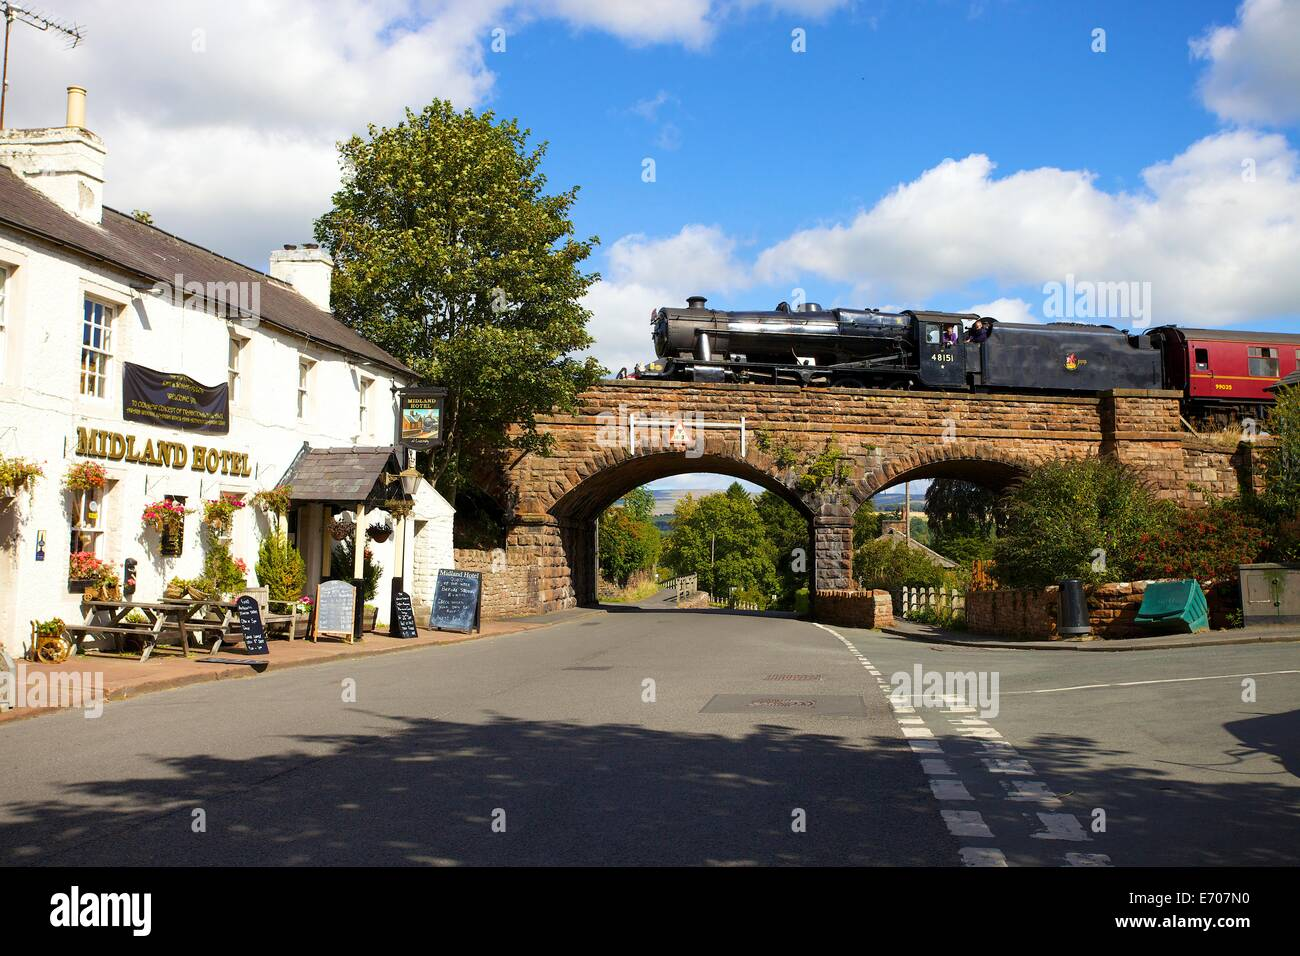 Steam train the LMS Stanier Class 8F 48151, on the bridge in Lazonby, Eden Valley, Cumbria, England, UK. - Stock Image